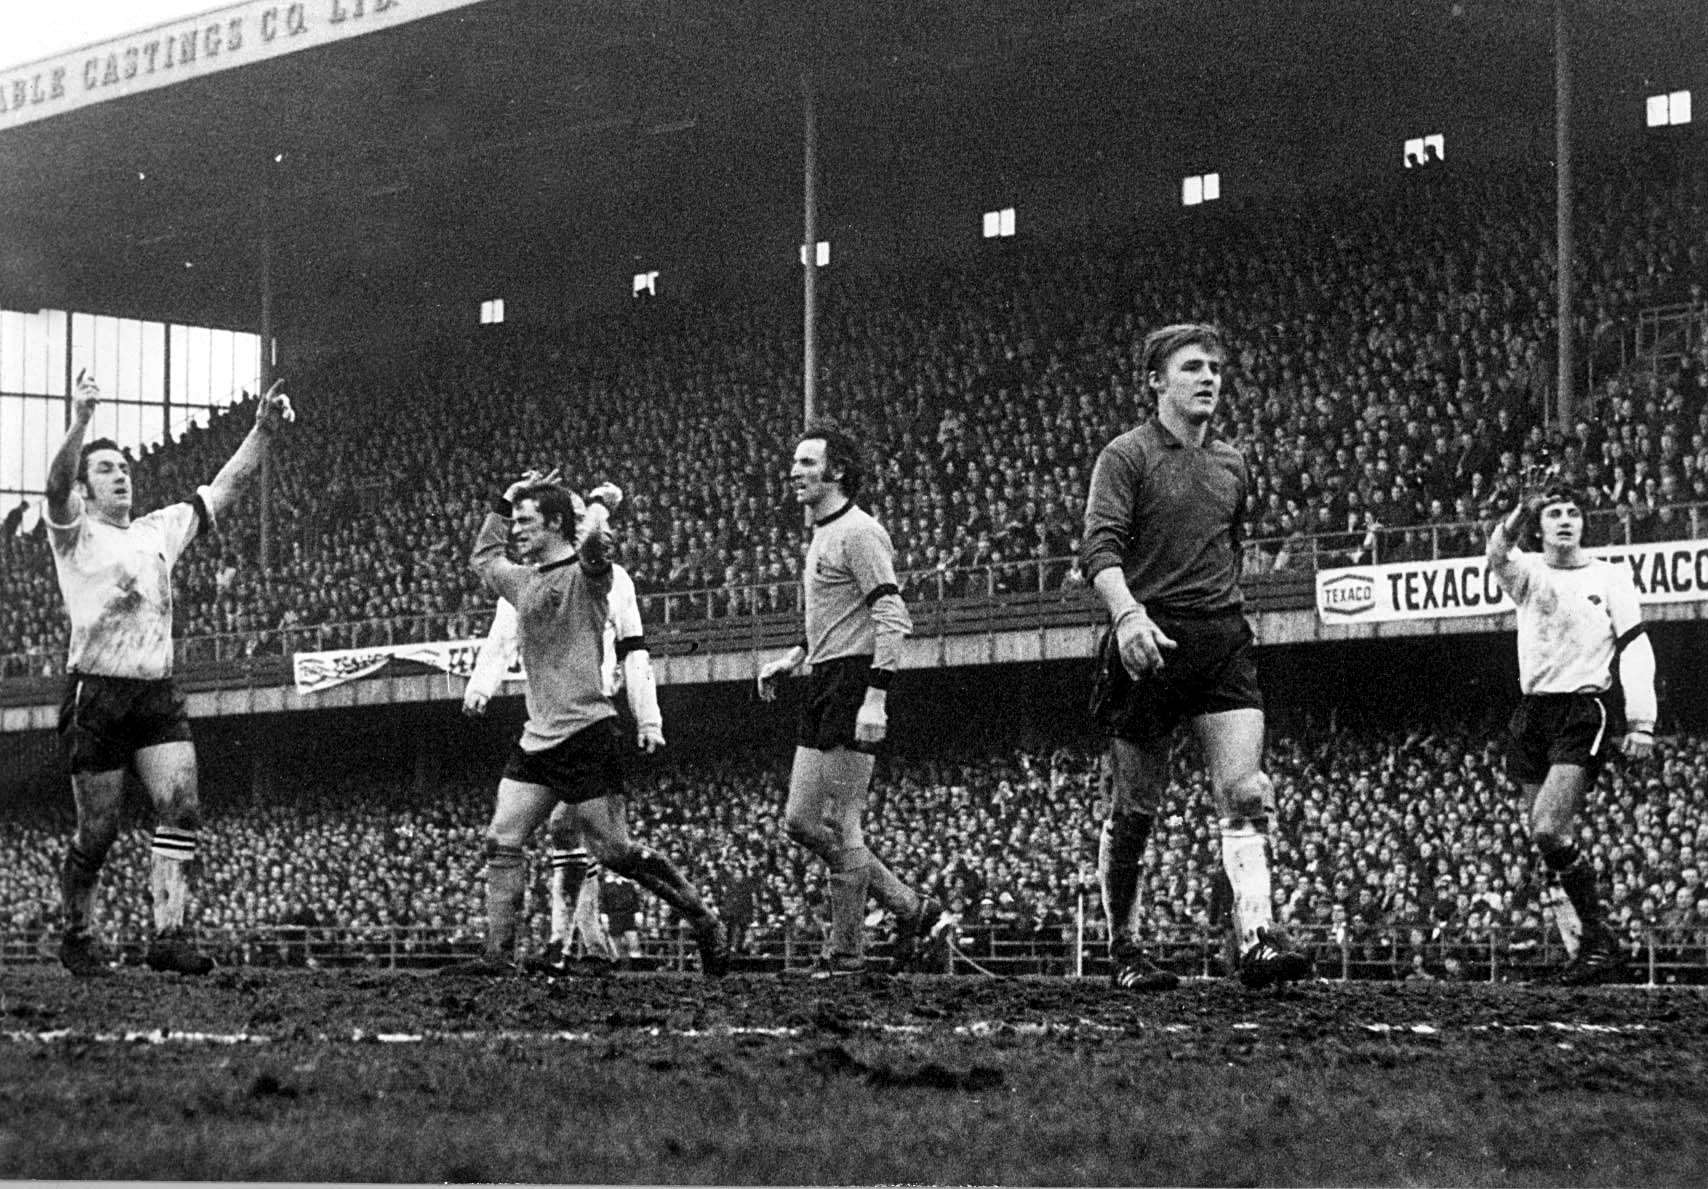 Roy McFarland (far right) about to breathe a sigh of relief as Wolves have a goal disallowed on the Baseball Ground mudheap in January, 1971.